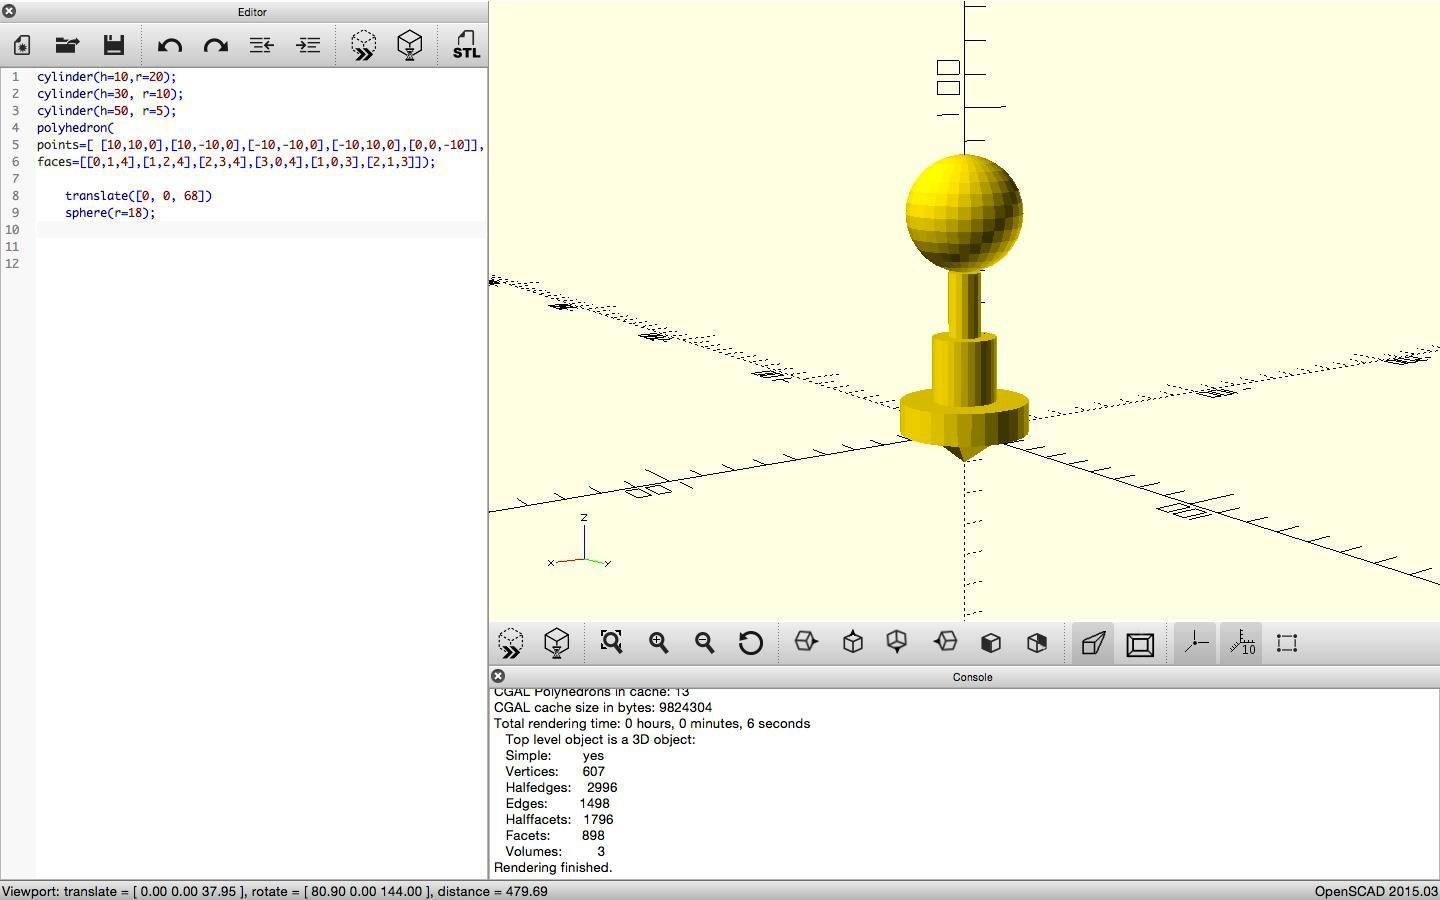 openSCAD 3d CAD Design Program - Phoenix Robotics and